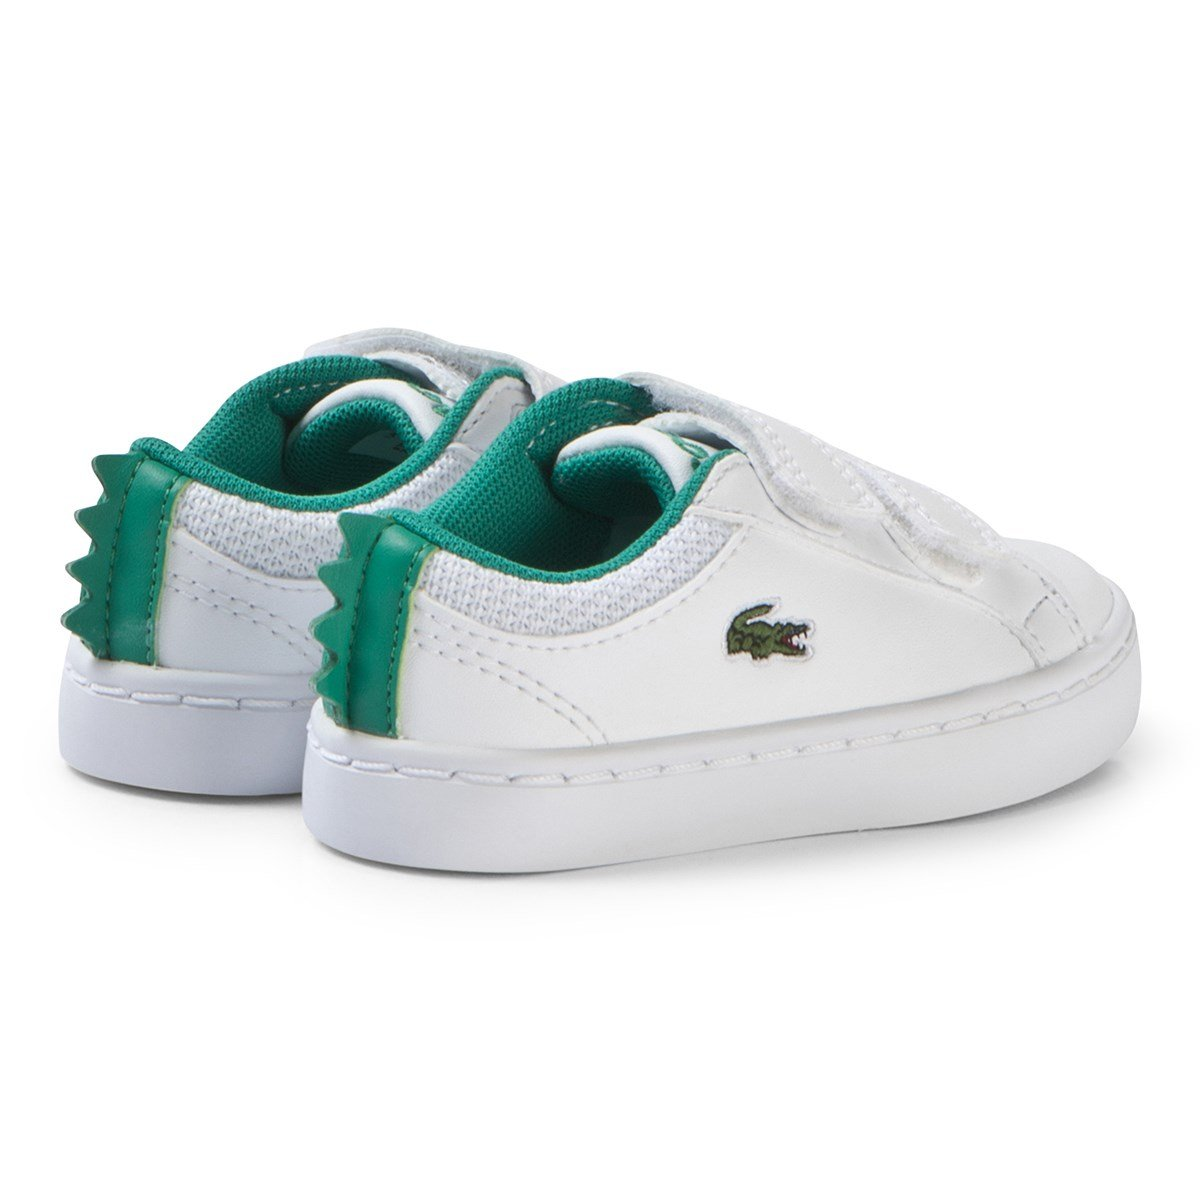 63f5e0032 Lacoste - White with Green Crocodile Spine Straightset 119 Velcro Shoes -  Babyshop.com